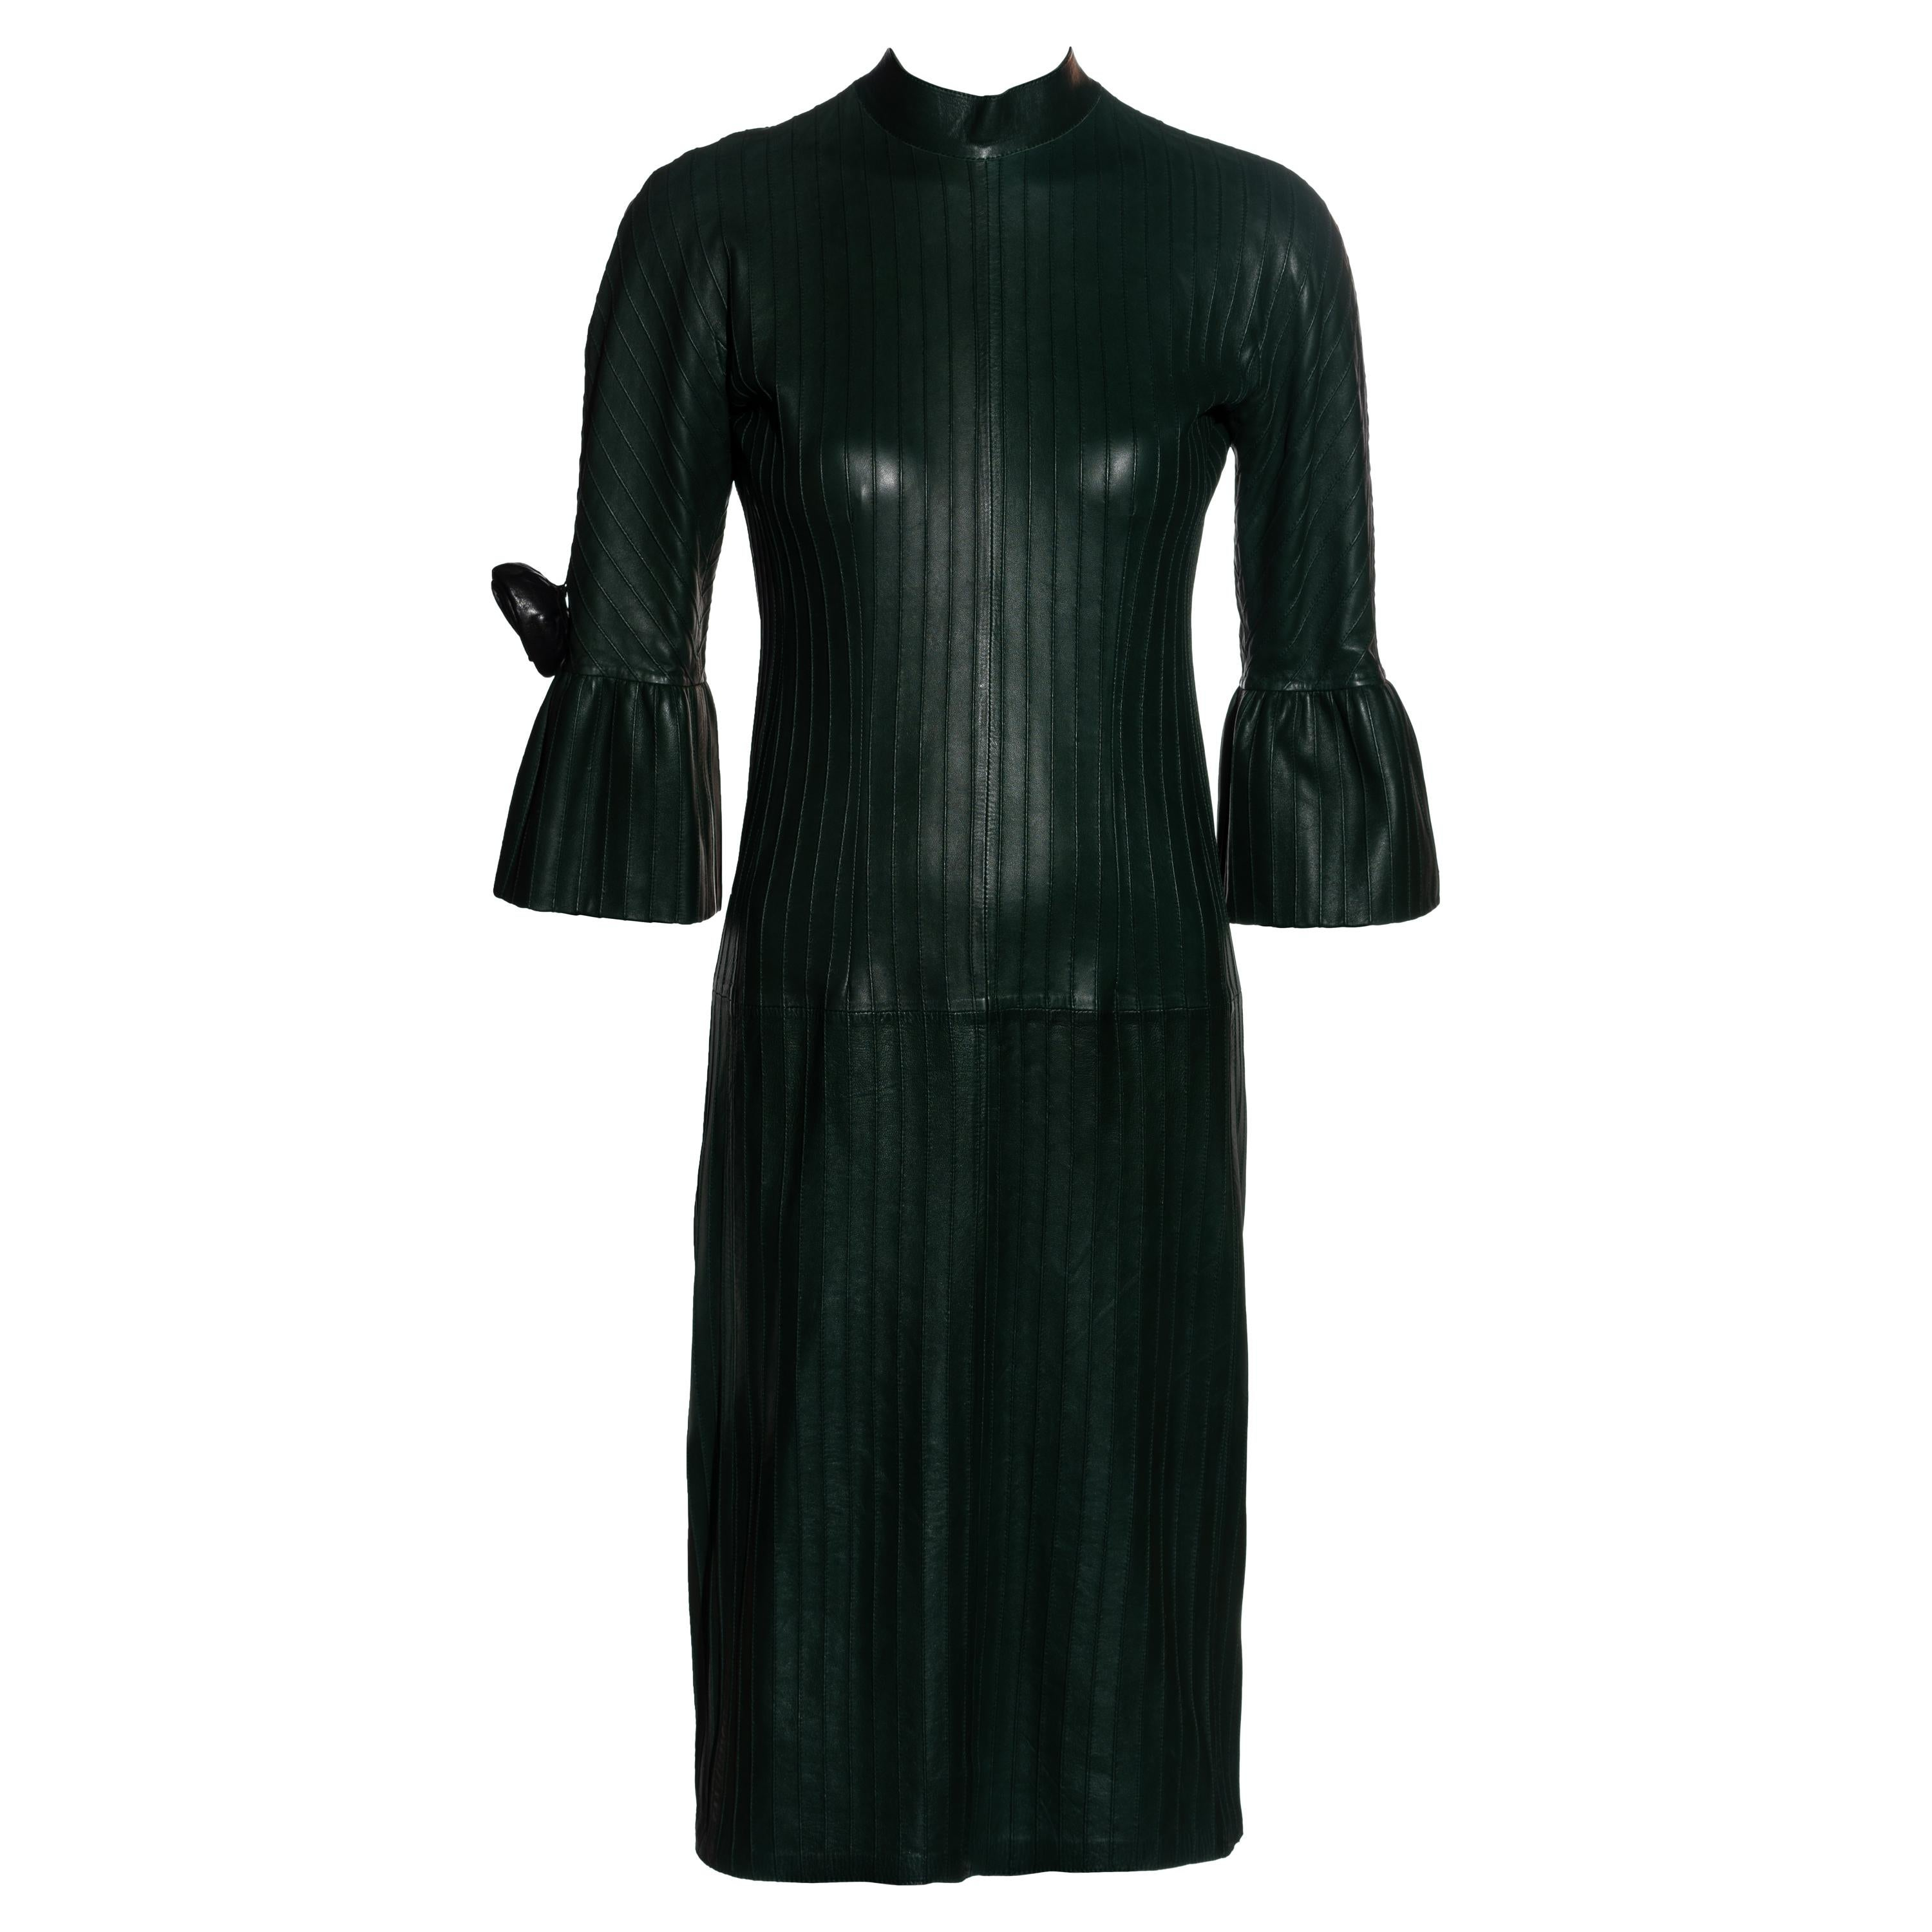 Gucci by Tom Ford bottle green pintuck leather shift dress, fw 1999